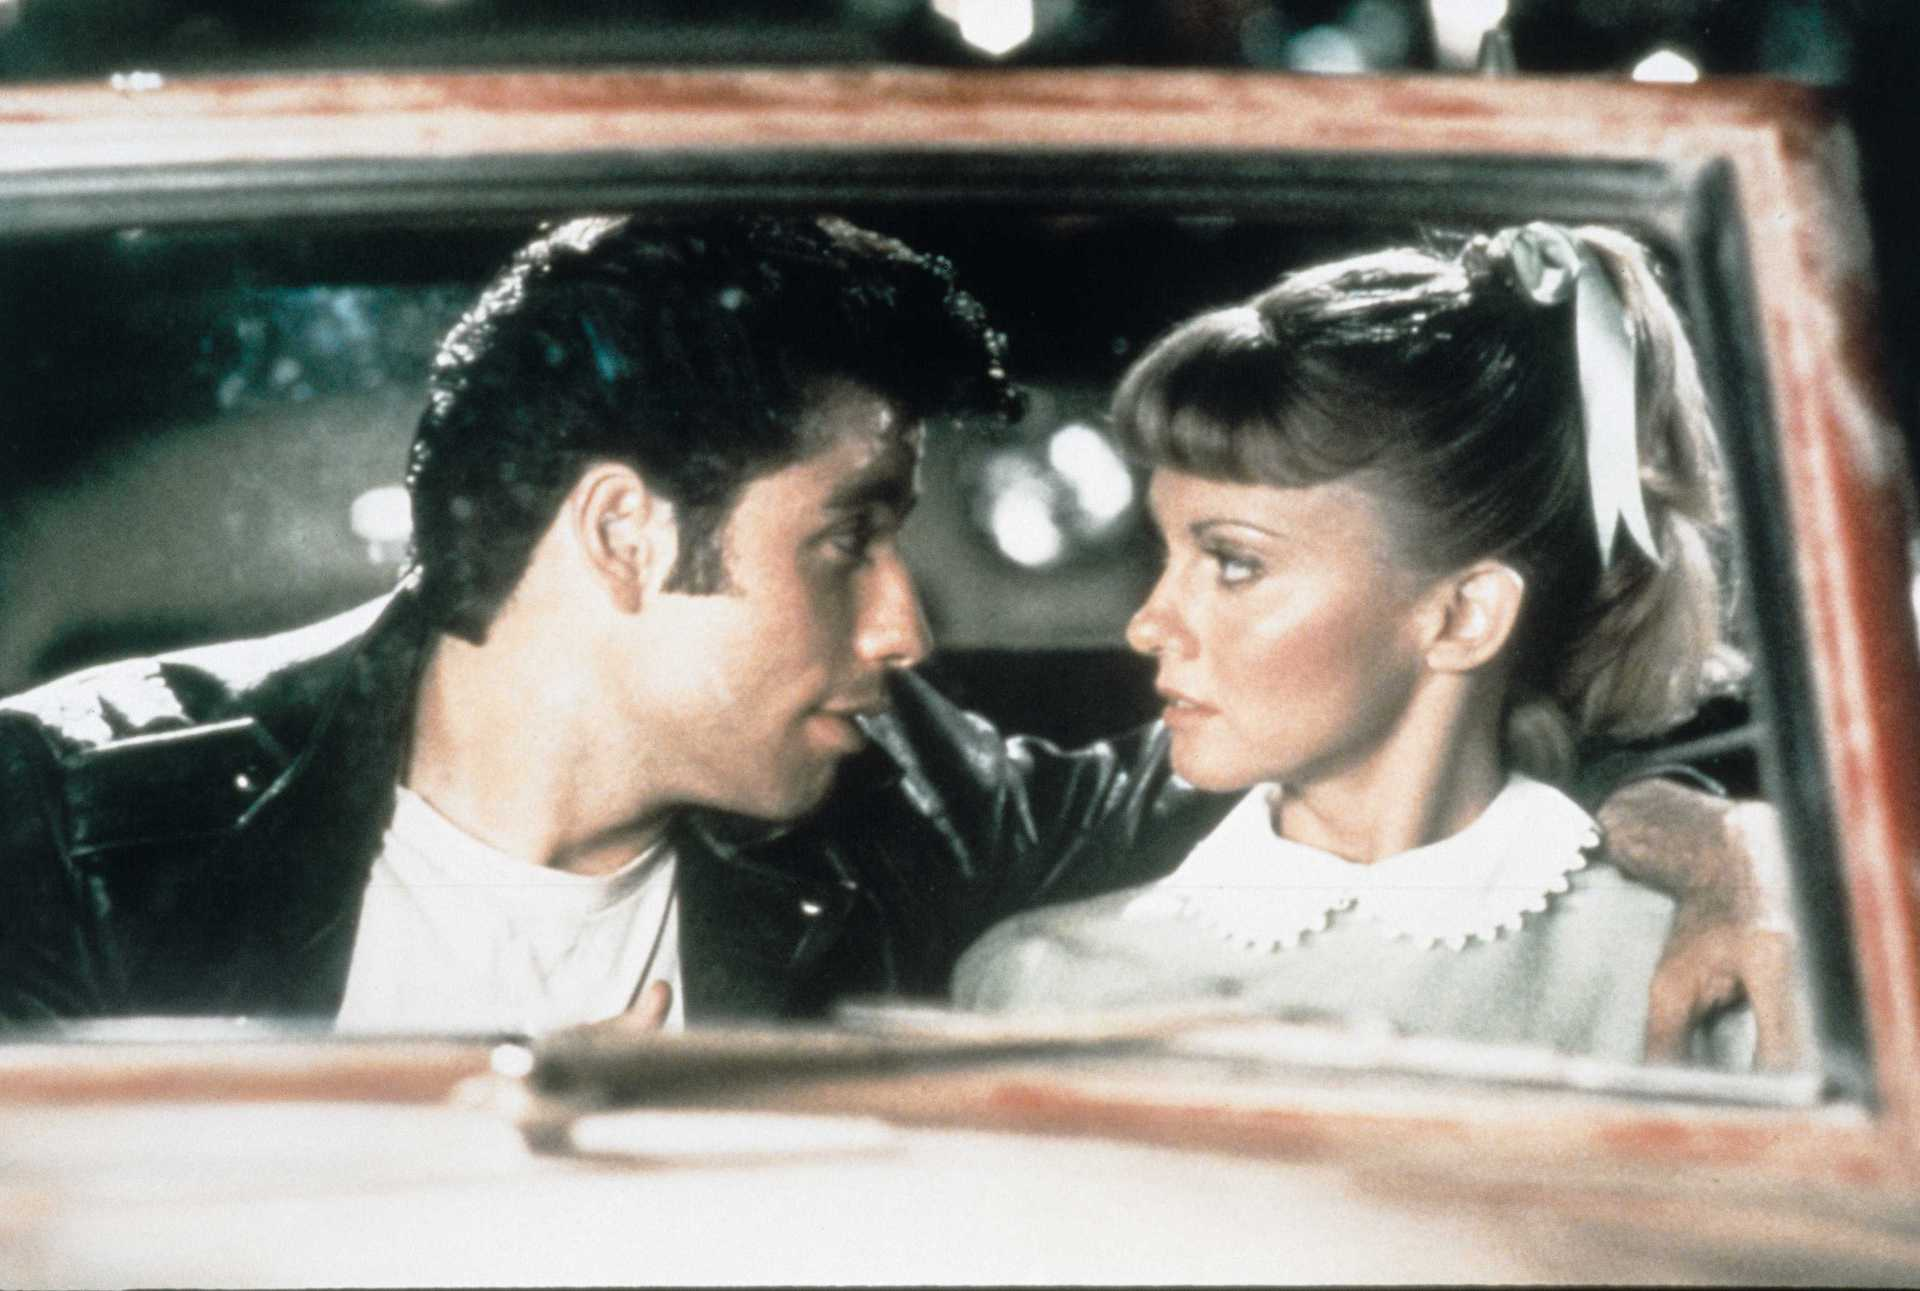 http://images.fanpop.com/images/image_uploads/Grease-grease-the-movie-512431_1920_1291.jpg